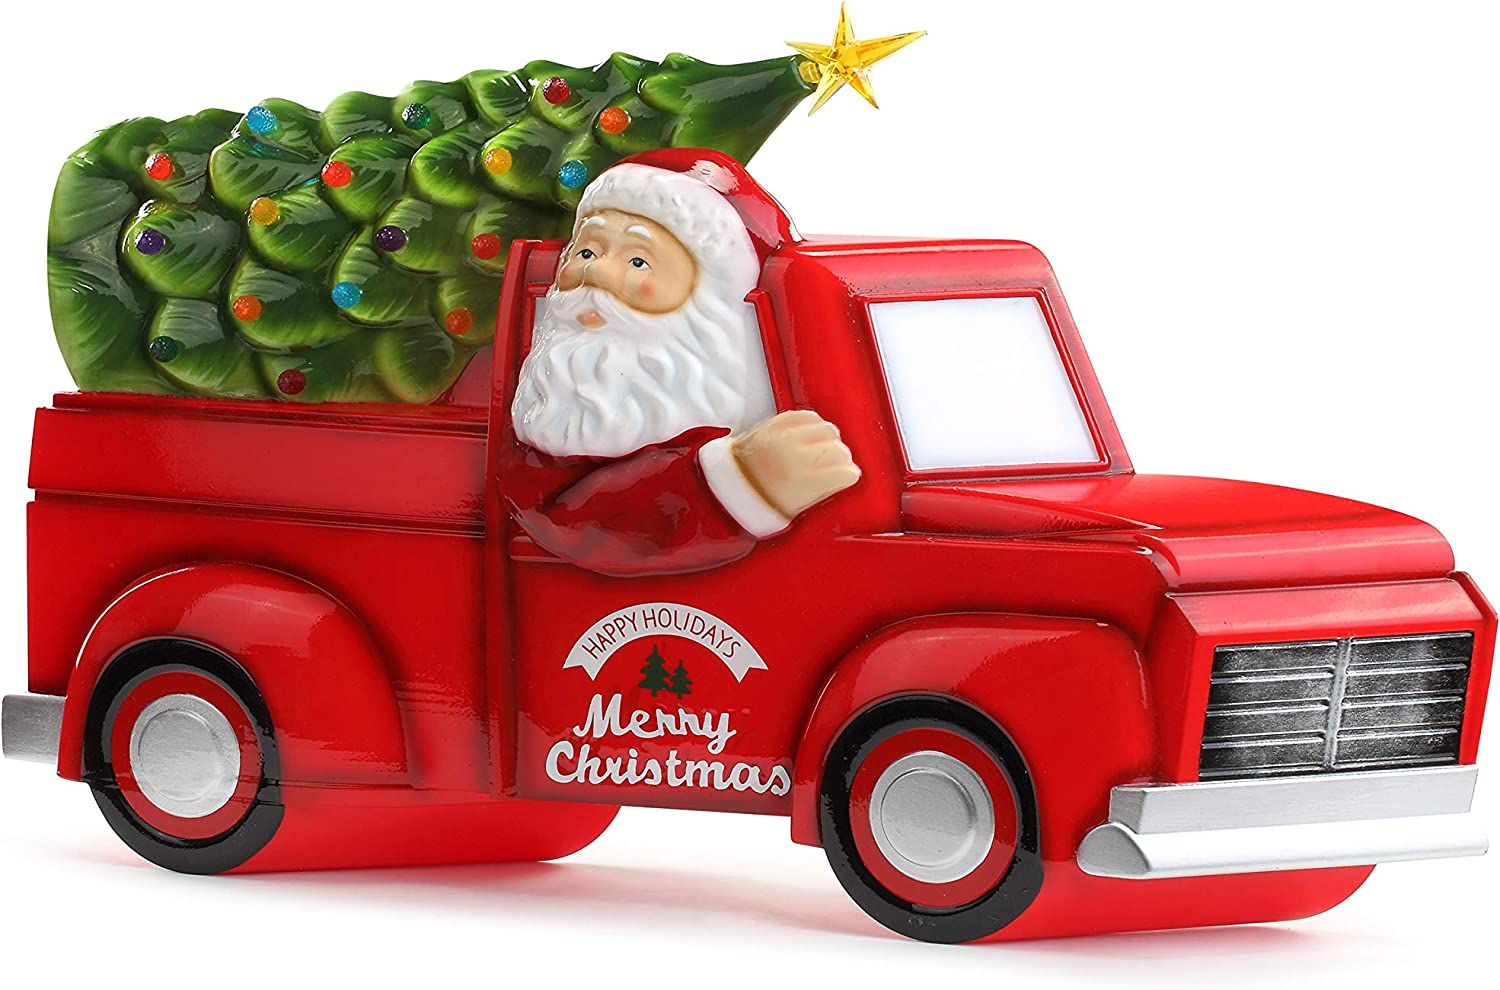 Amazon Com Mr Christmas Blow Mold Truck With Tree Christmas Decor Red Green Home Kitchen Made in 3ds max 2009, include 10 trees with. mr christmas blow mold truck with tree